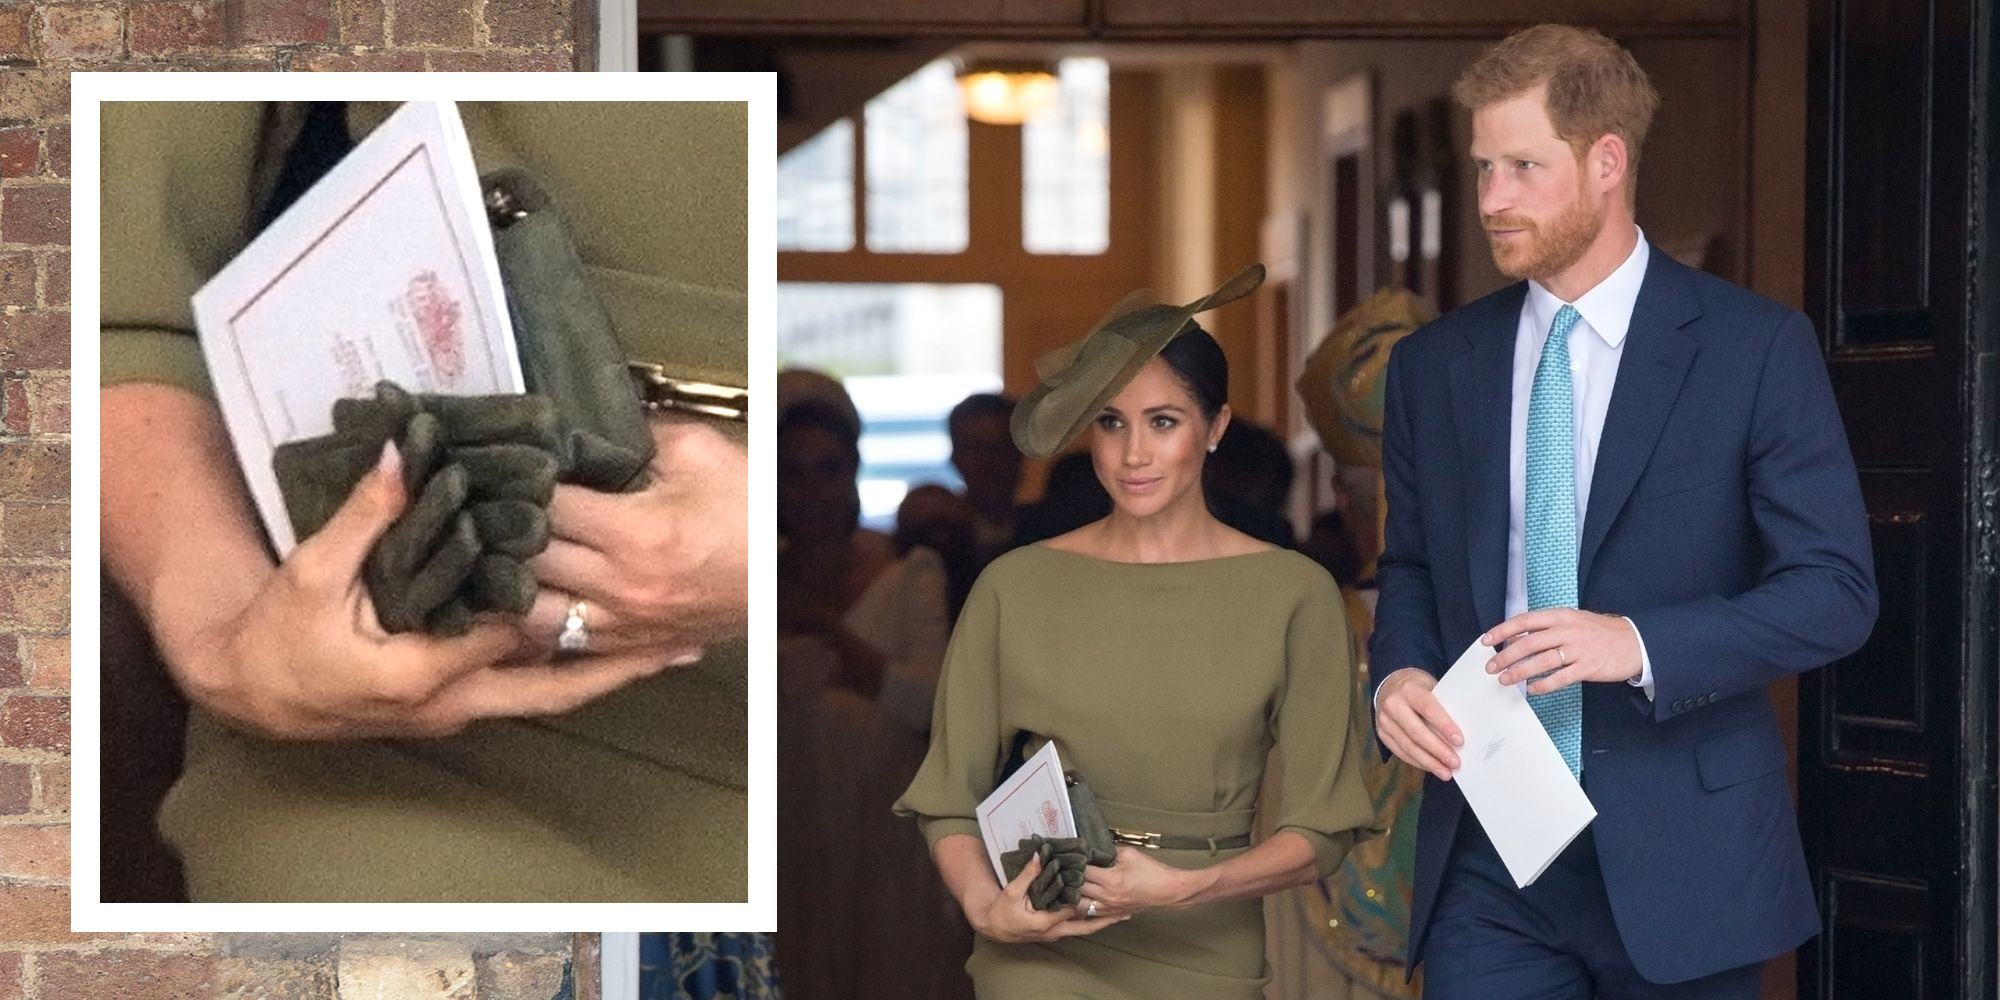 a25c80ad7 Meghan Markle Just Had Her First Royal Glove Moment at Prince Louis's  Christening